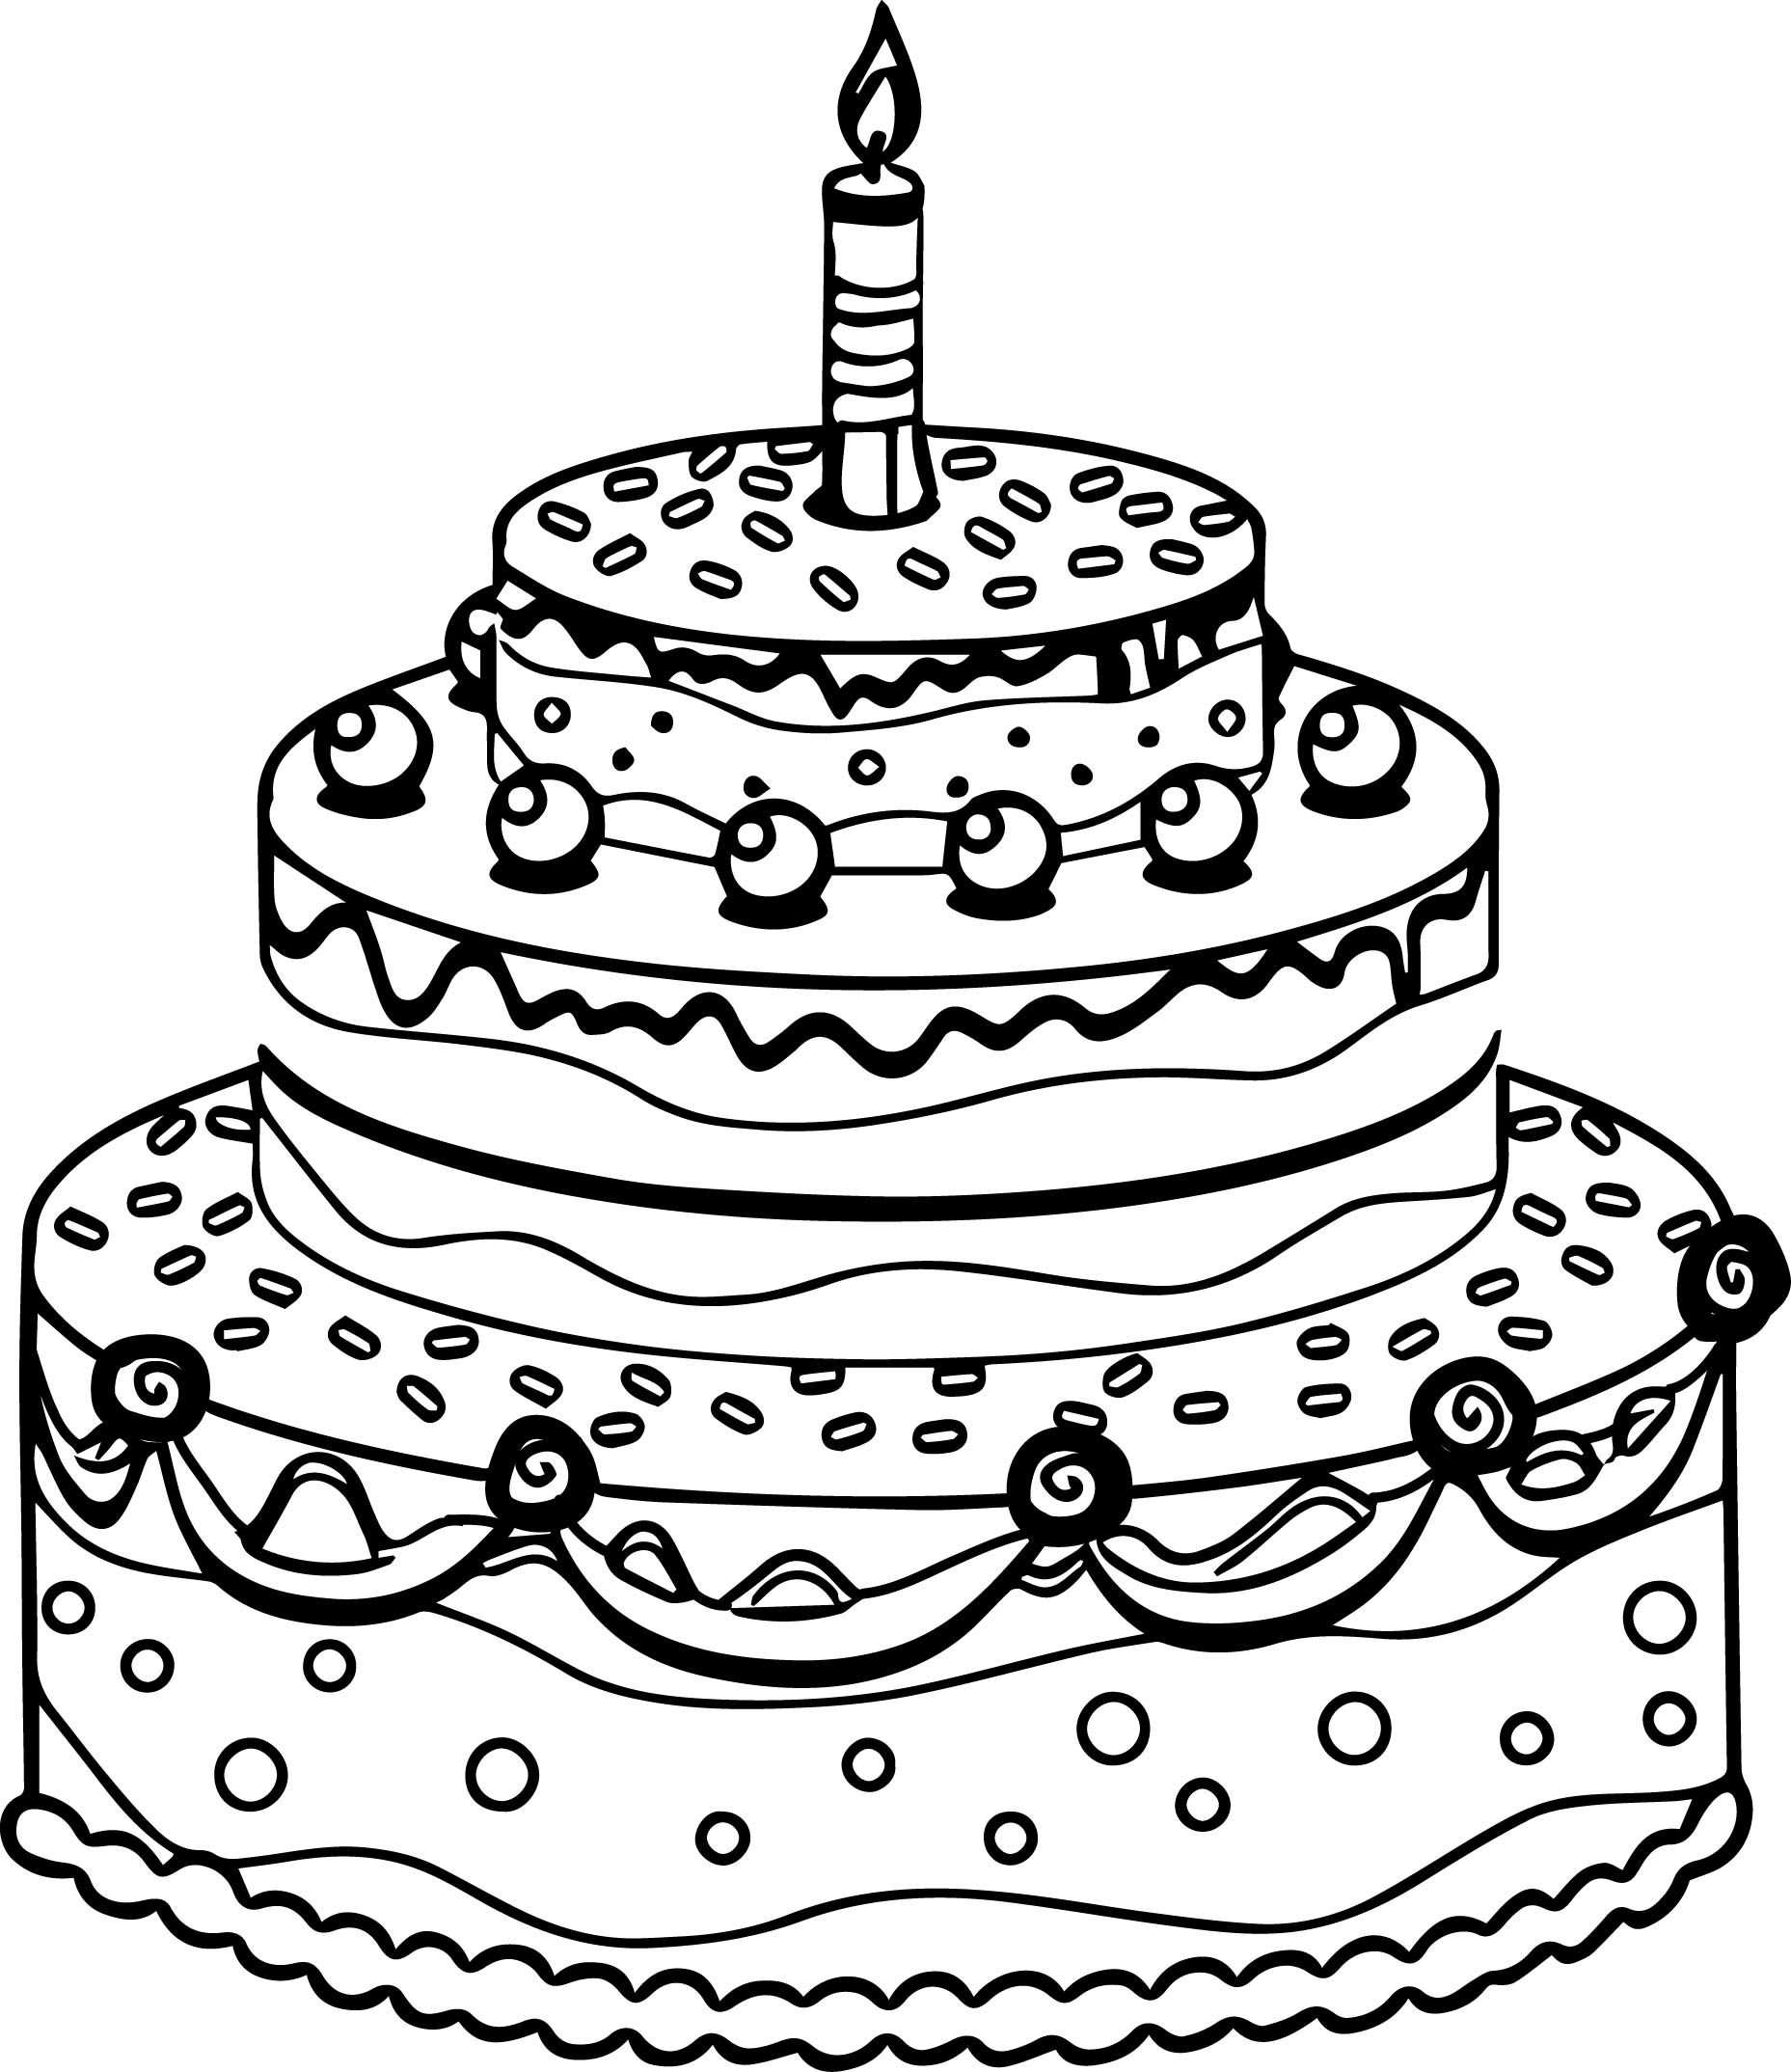 birthday cake coloring book ; Cute-Birthday-Cake-Coloring-Page